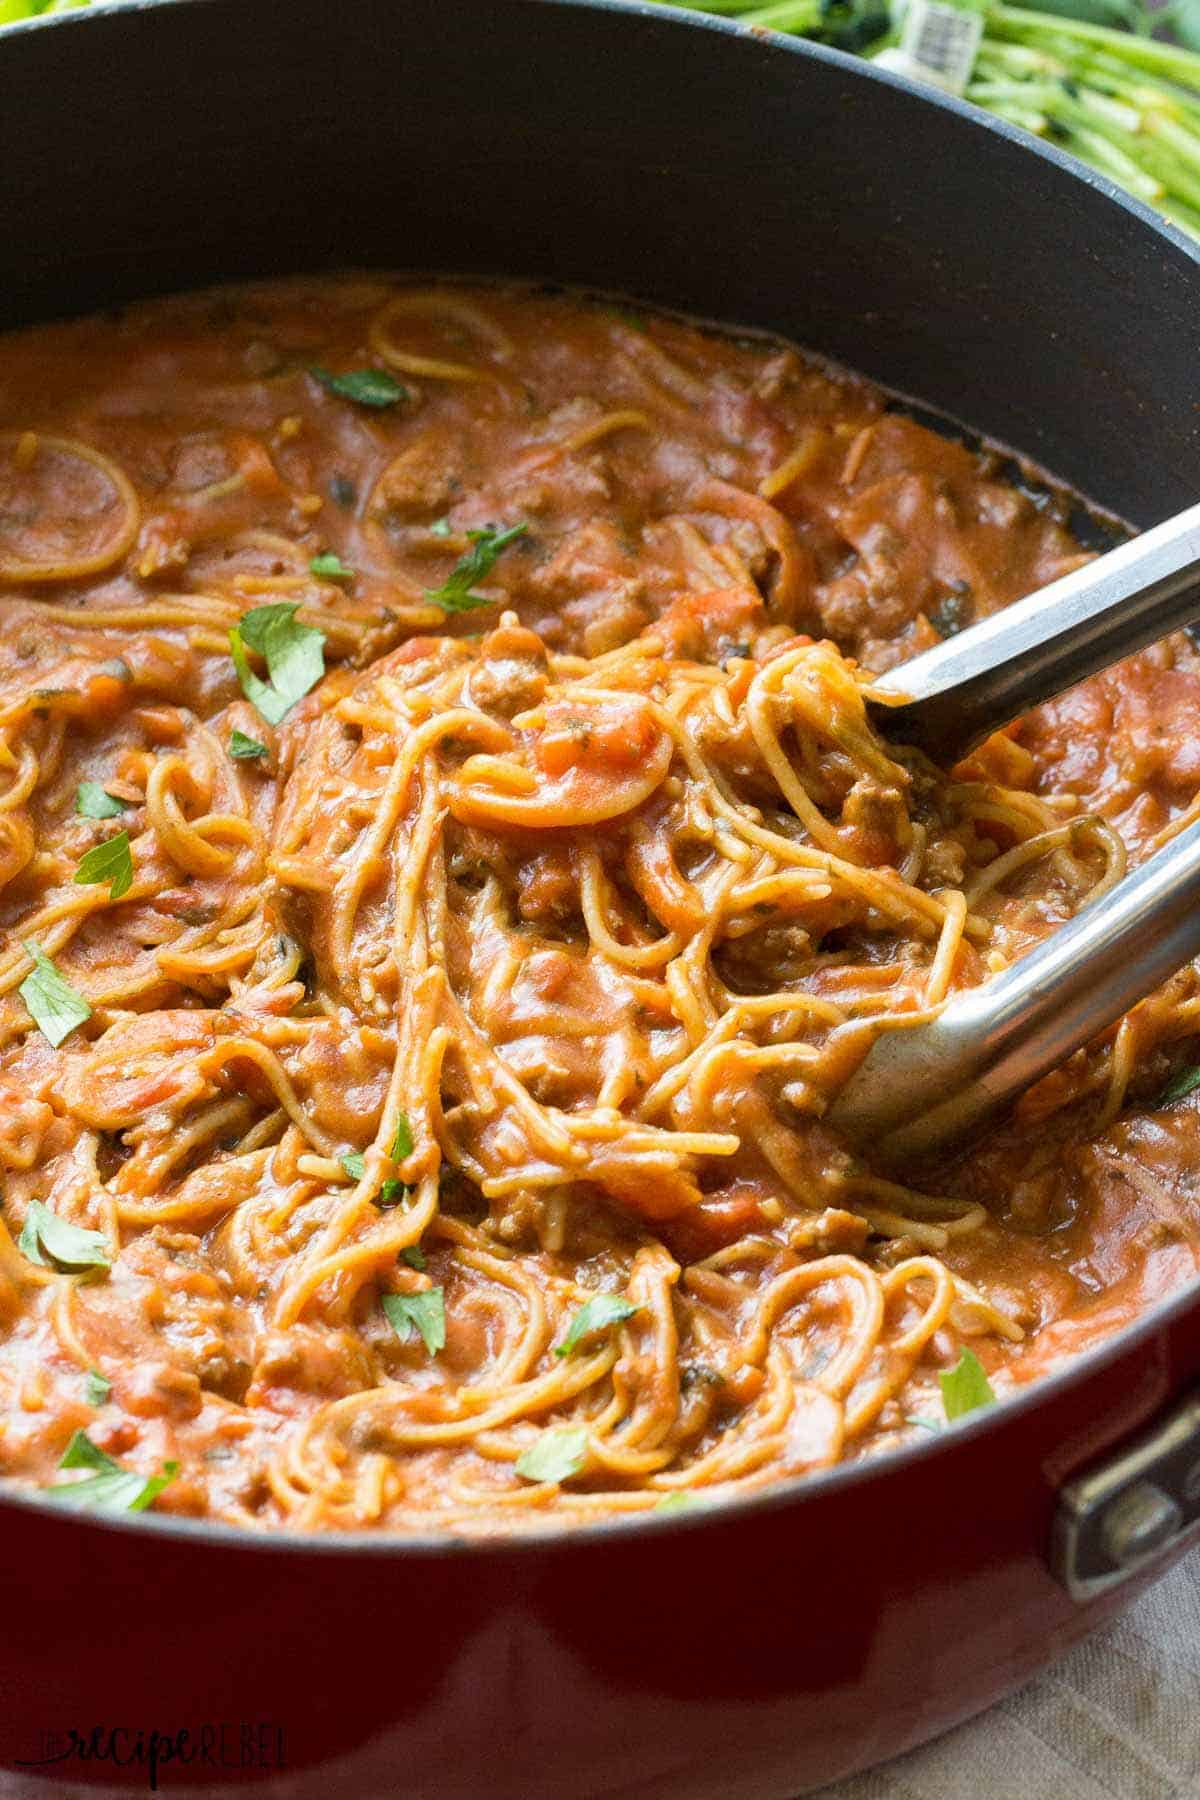 This One Pot Spaghetti and Meat Sauce is a healthy, easy and delicious meal for any night of the week! Made healthier with hidden veggies and one other secret ingredient I bet you'll never guess!